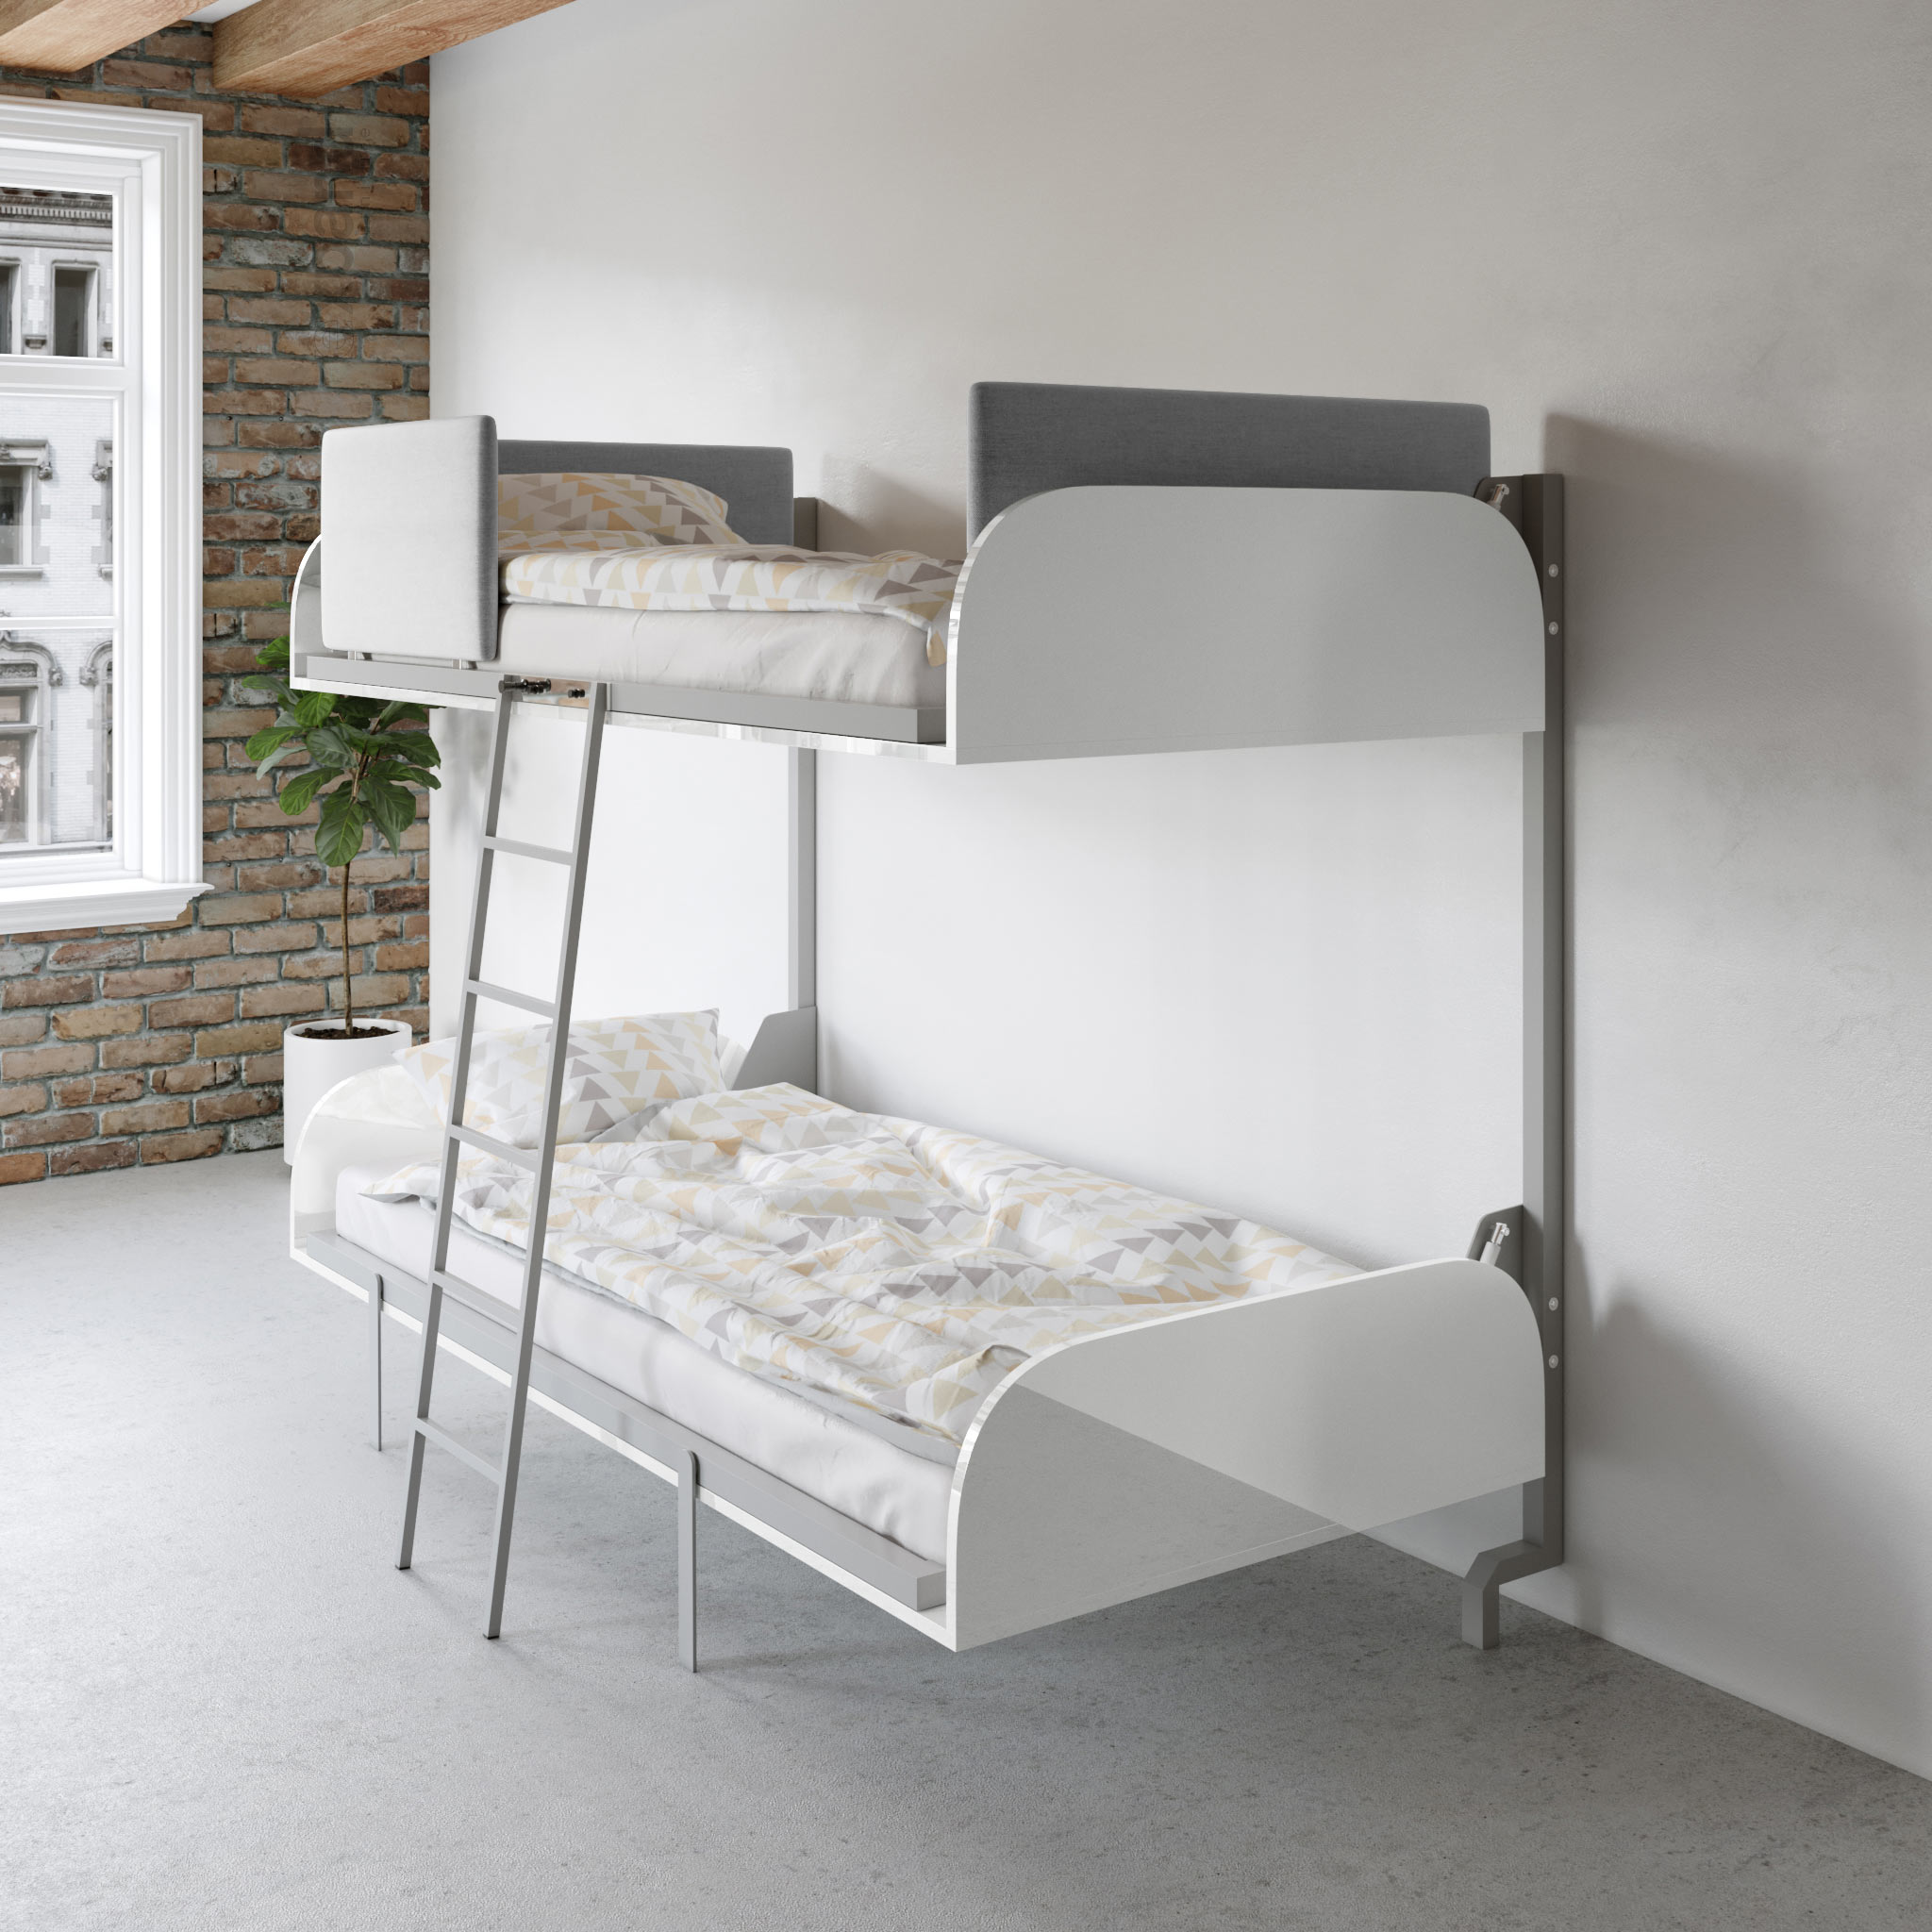 Hover Compact Fold Away Wall Bunk Beds Expand